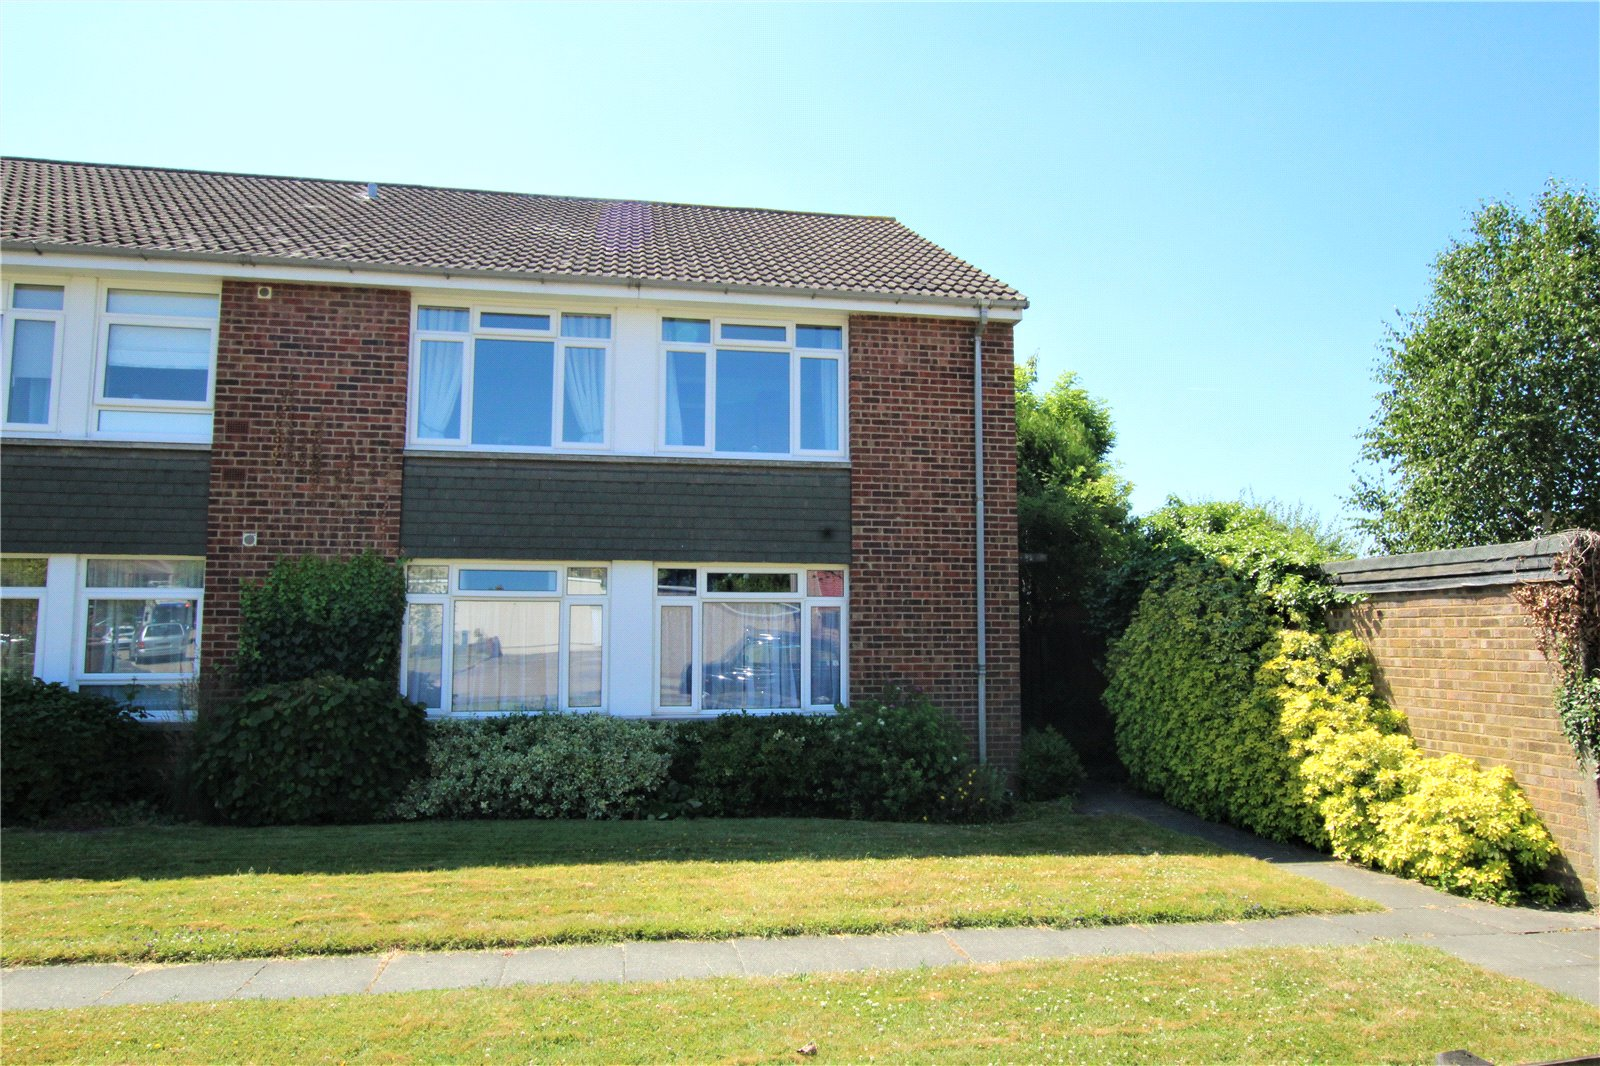 Fairfield Close, Sidcup, Kent, DA15